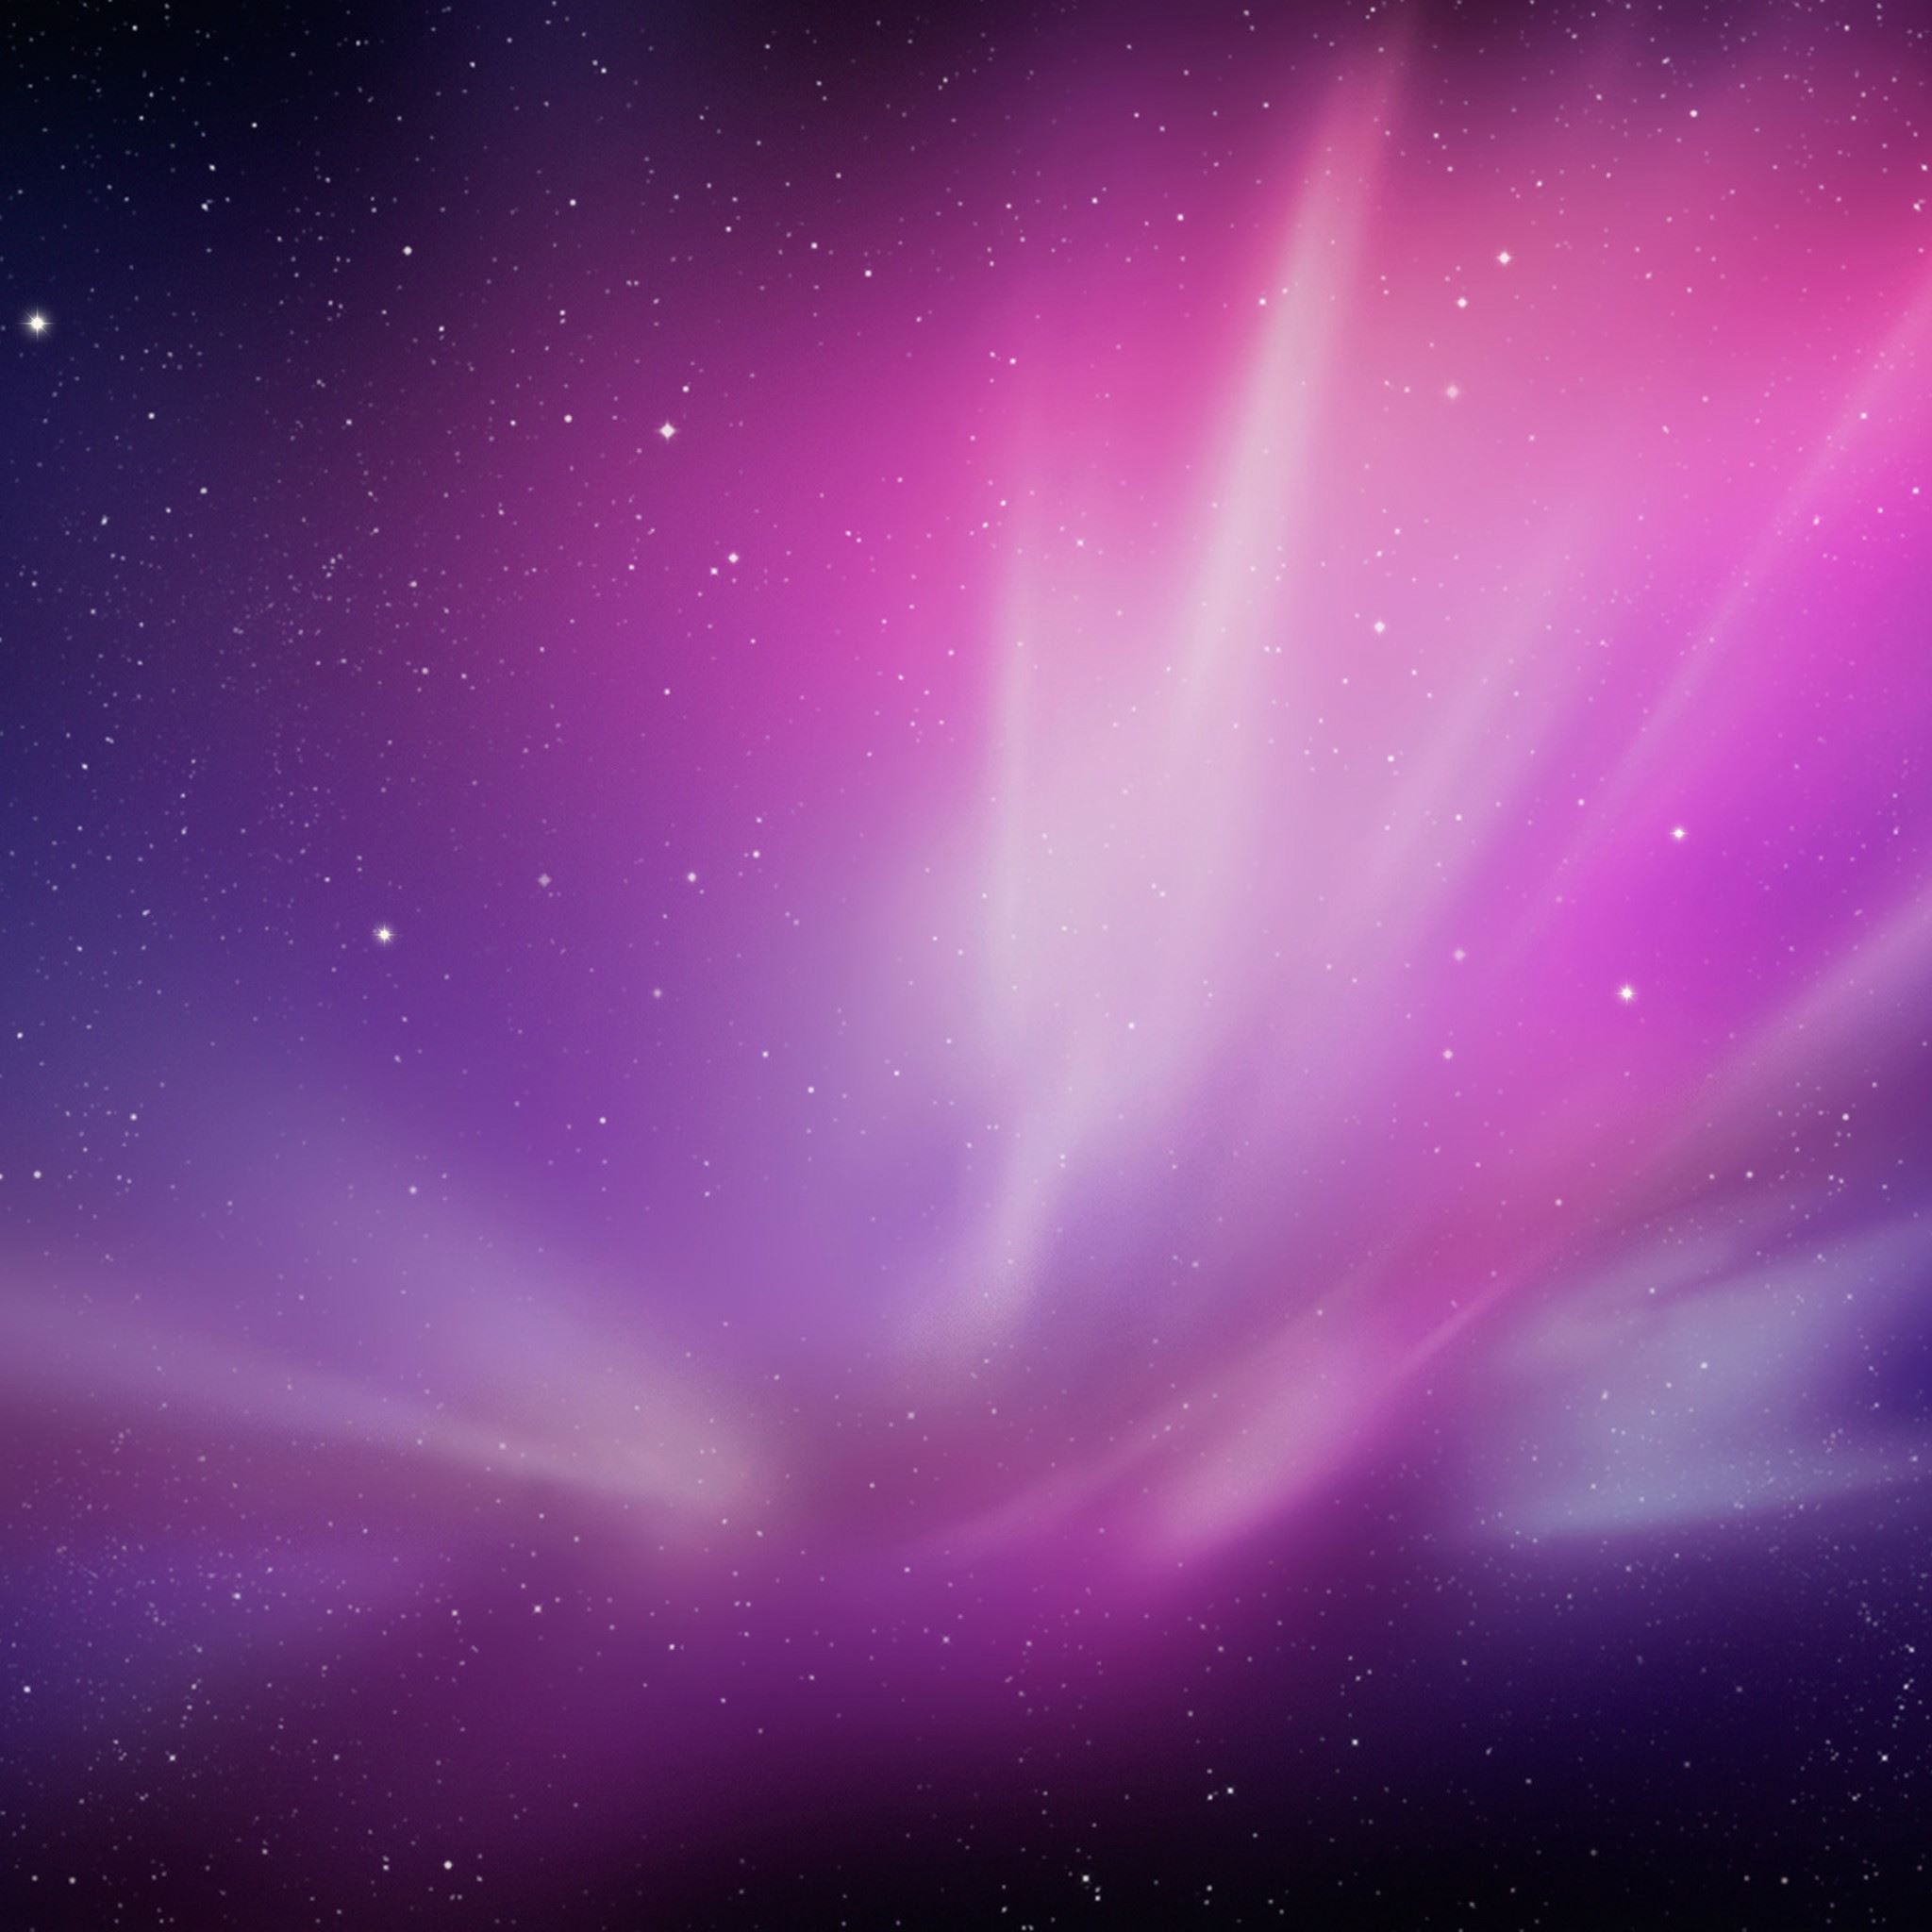 Fantasy Purple Red Shiny Nebula Space View iPad Air wallpaper